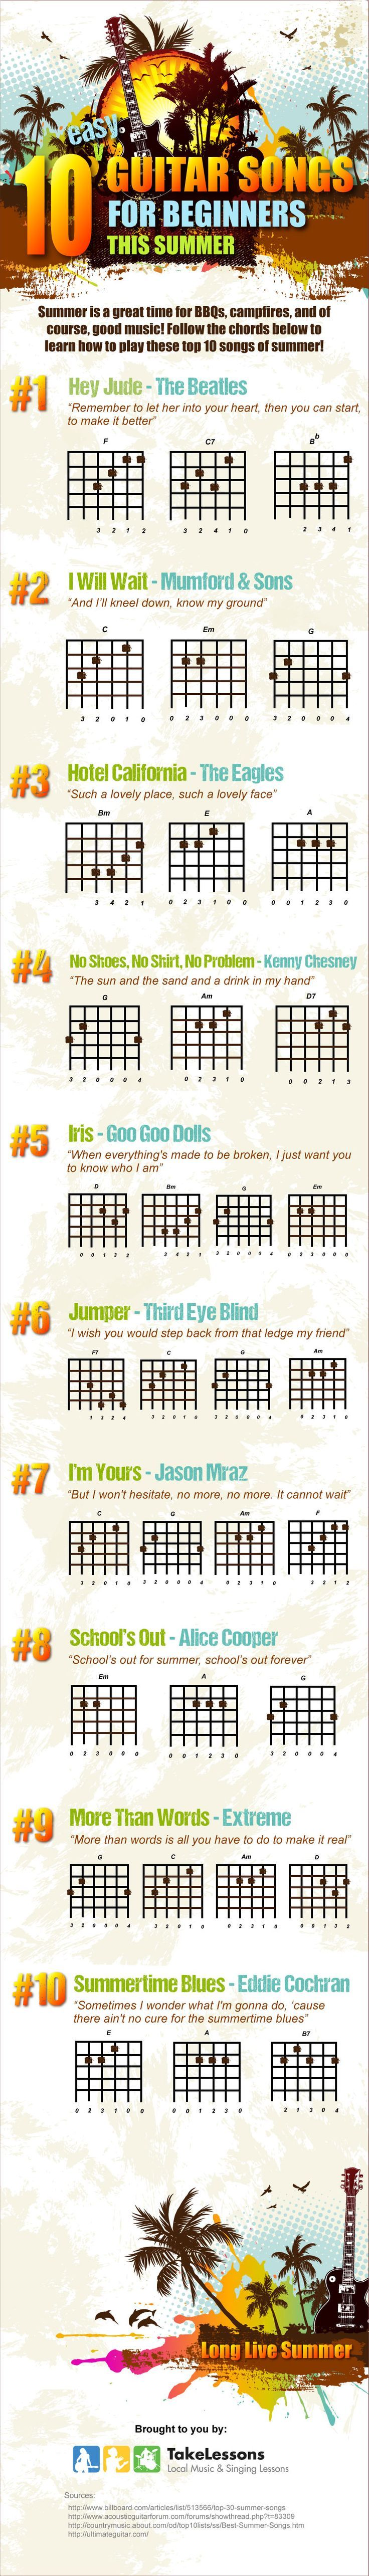 10 Easiest Acoustic Guitar Songs to Play - Insider Monkey